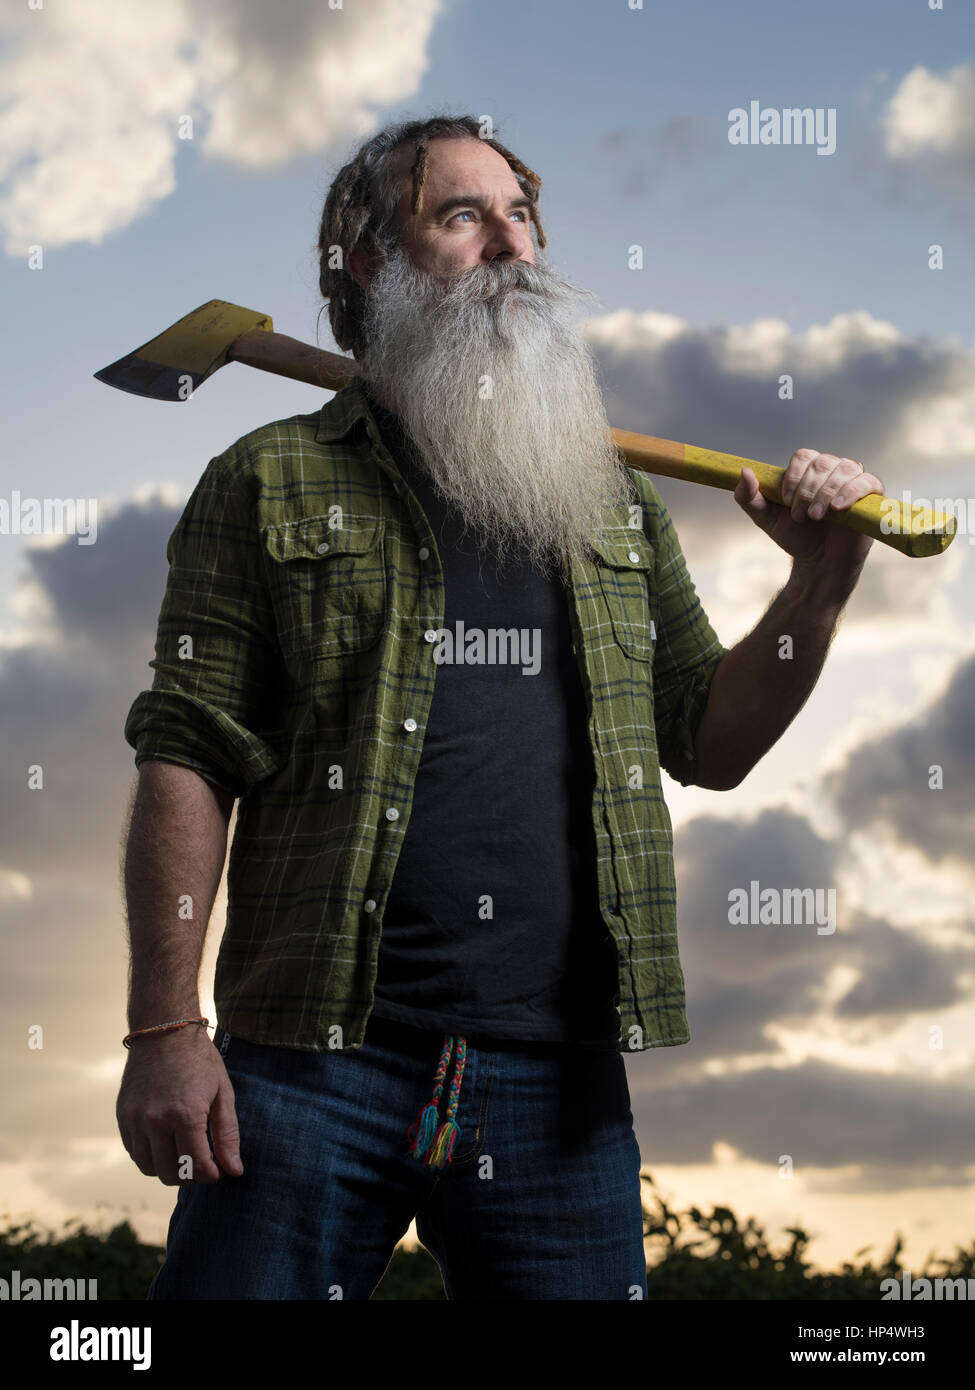 Lumberjack with axe portrait - Stock Image